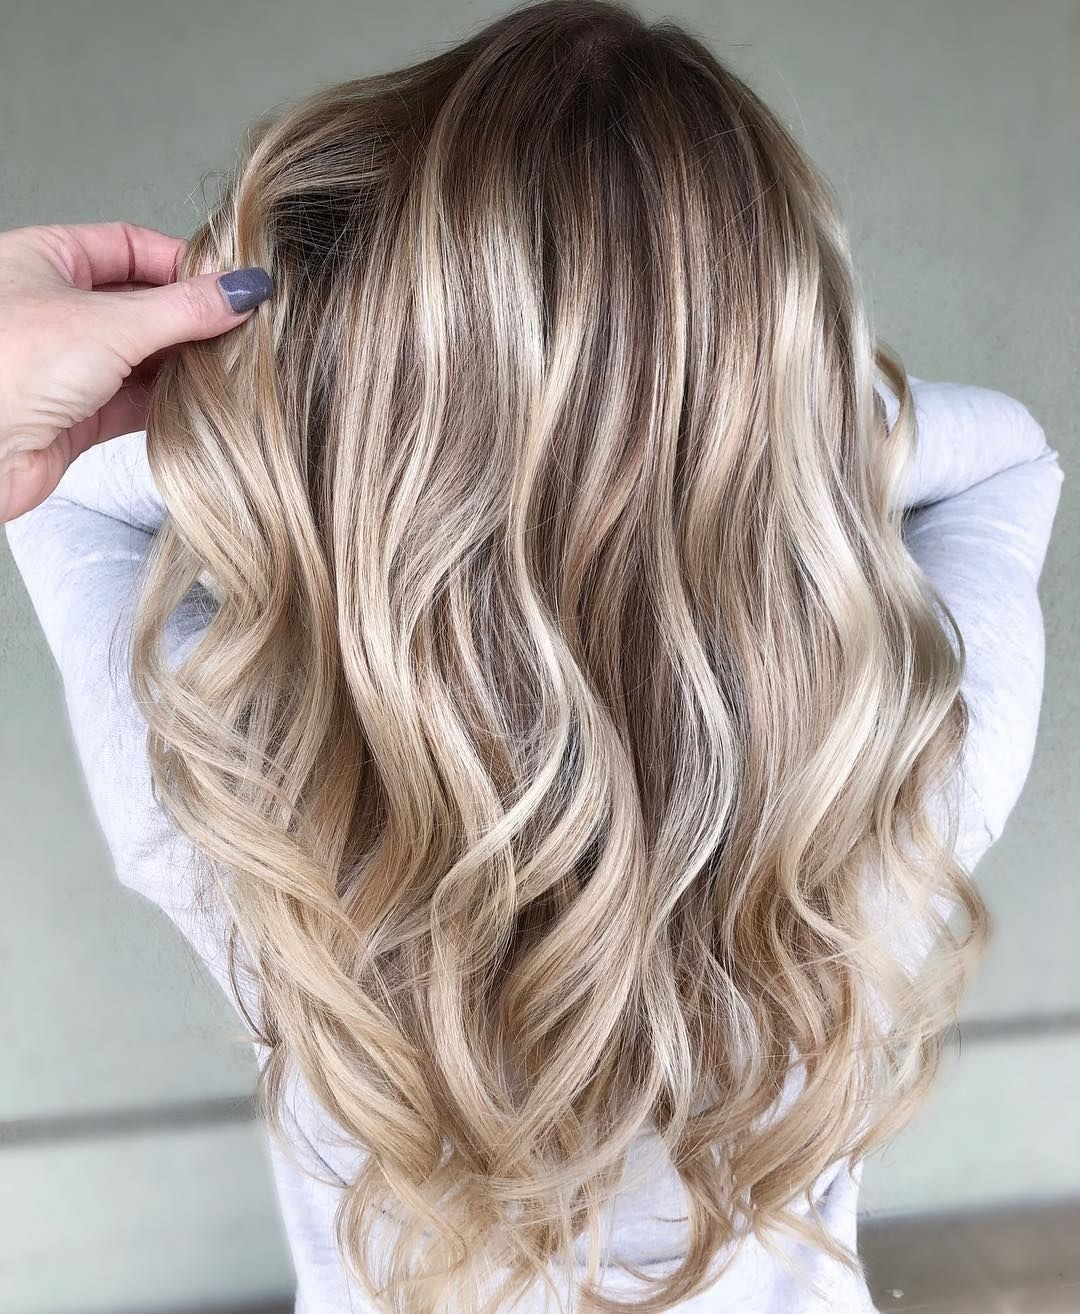 Vanilla Chai Hair Is the Cold-Weather Blonde Hue Y